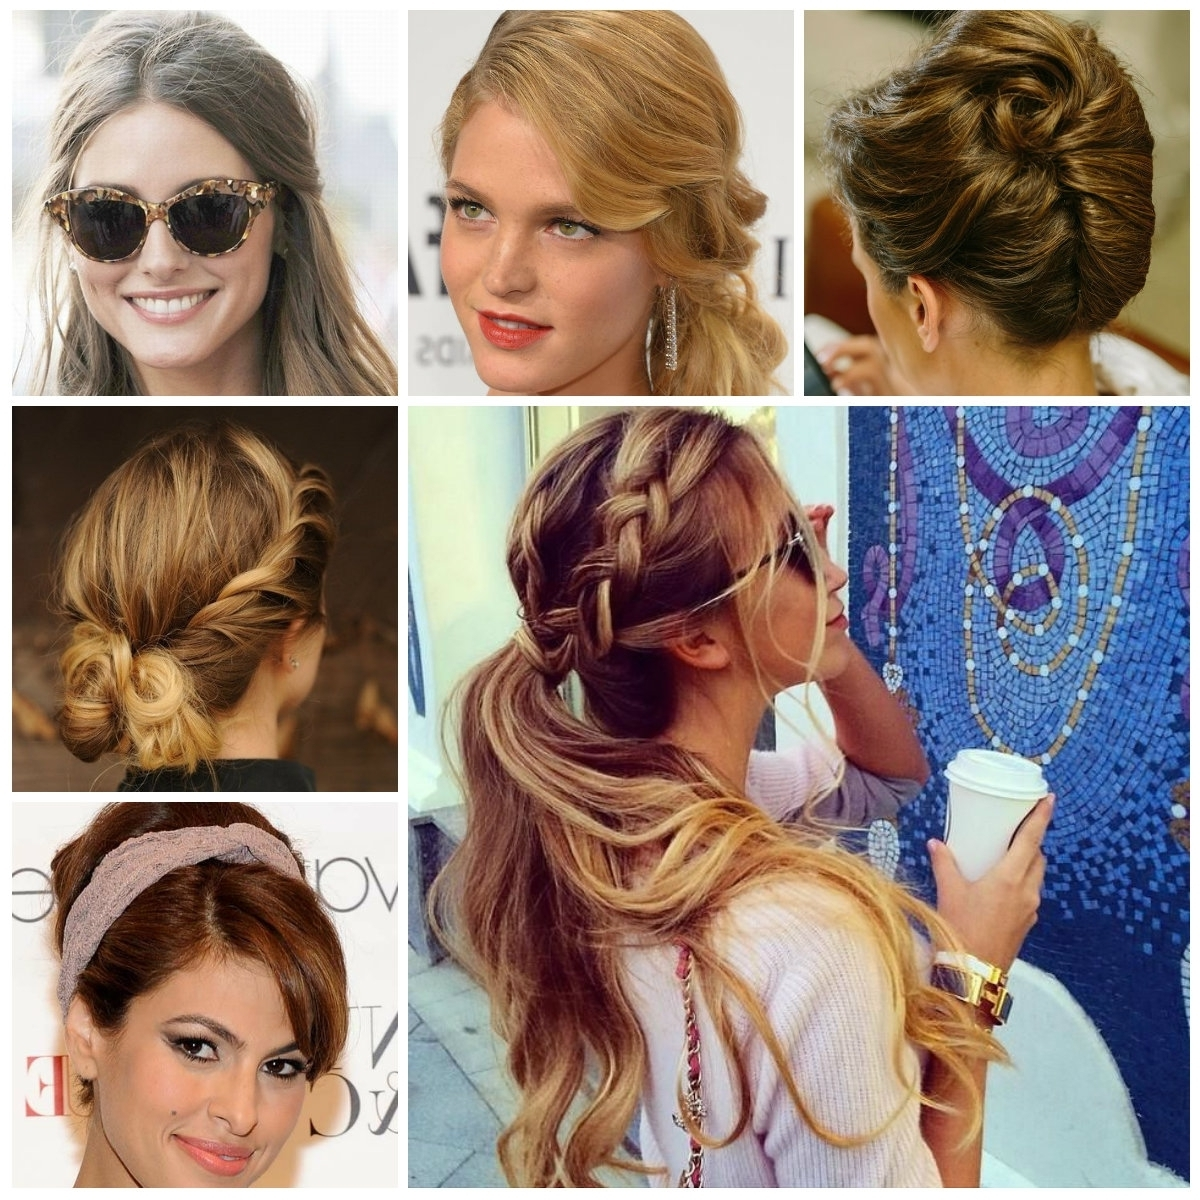 Easy Casual Updo Hairstyles For Long Hair – Women Medium Haircut With Regard To Cute Easy Updos For Long Hair (View 3 of 15)